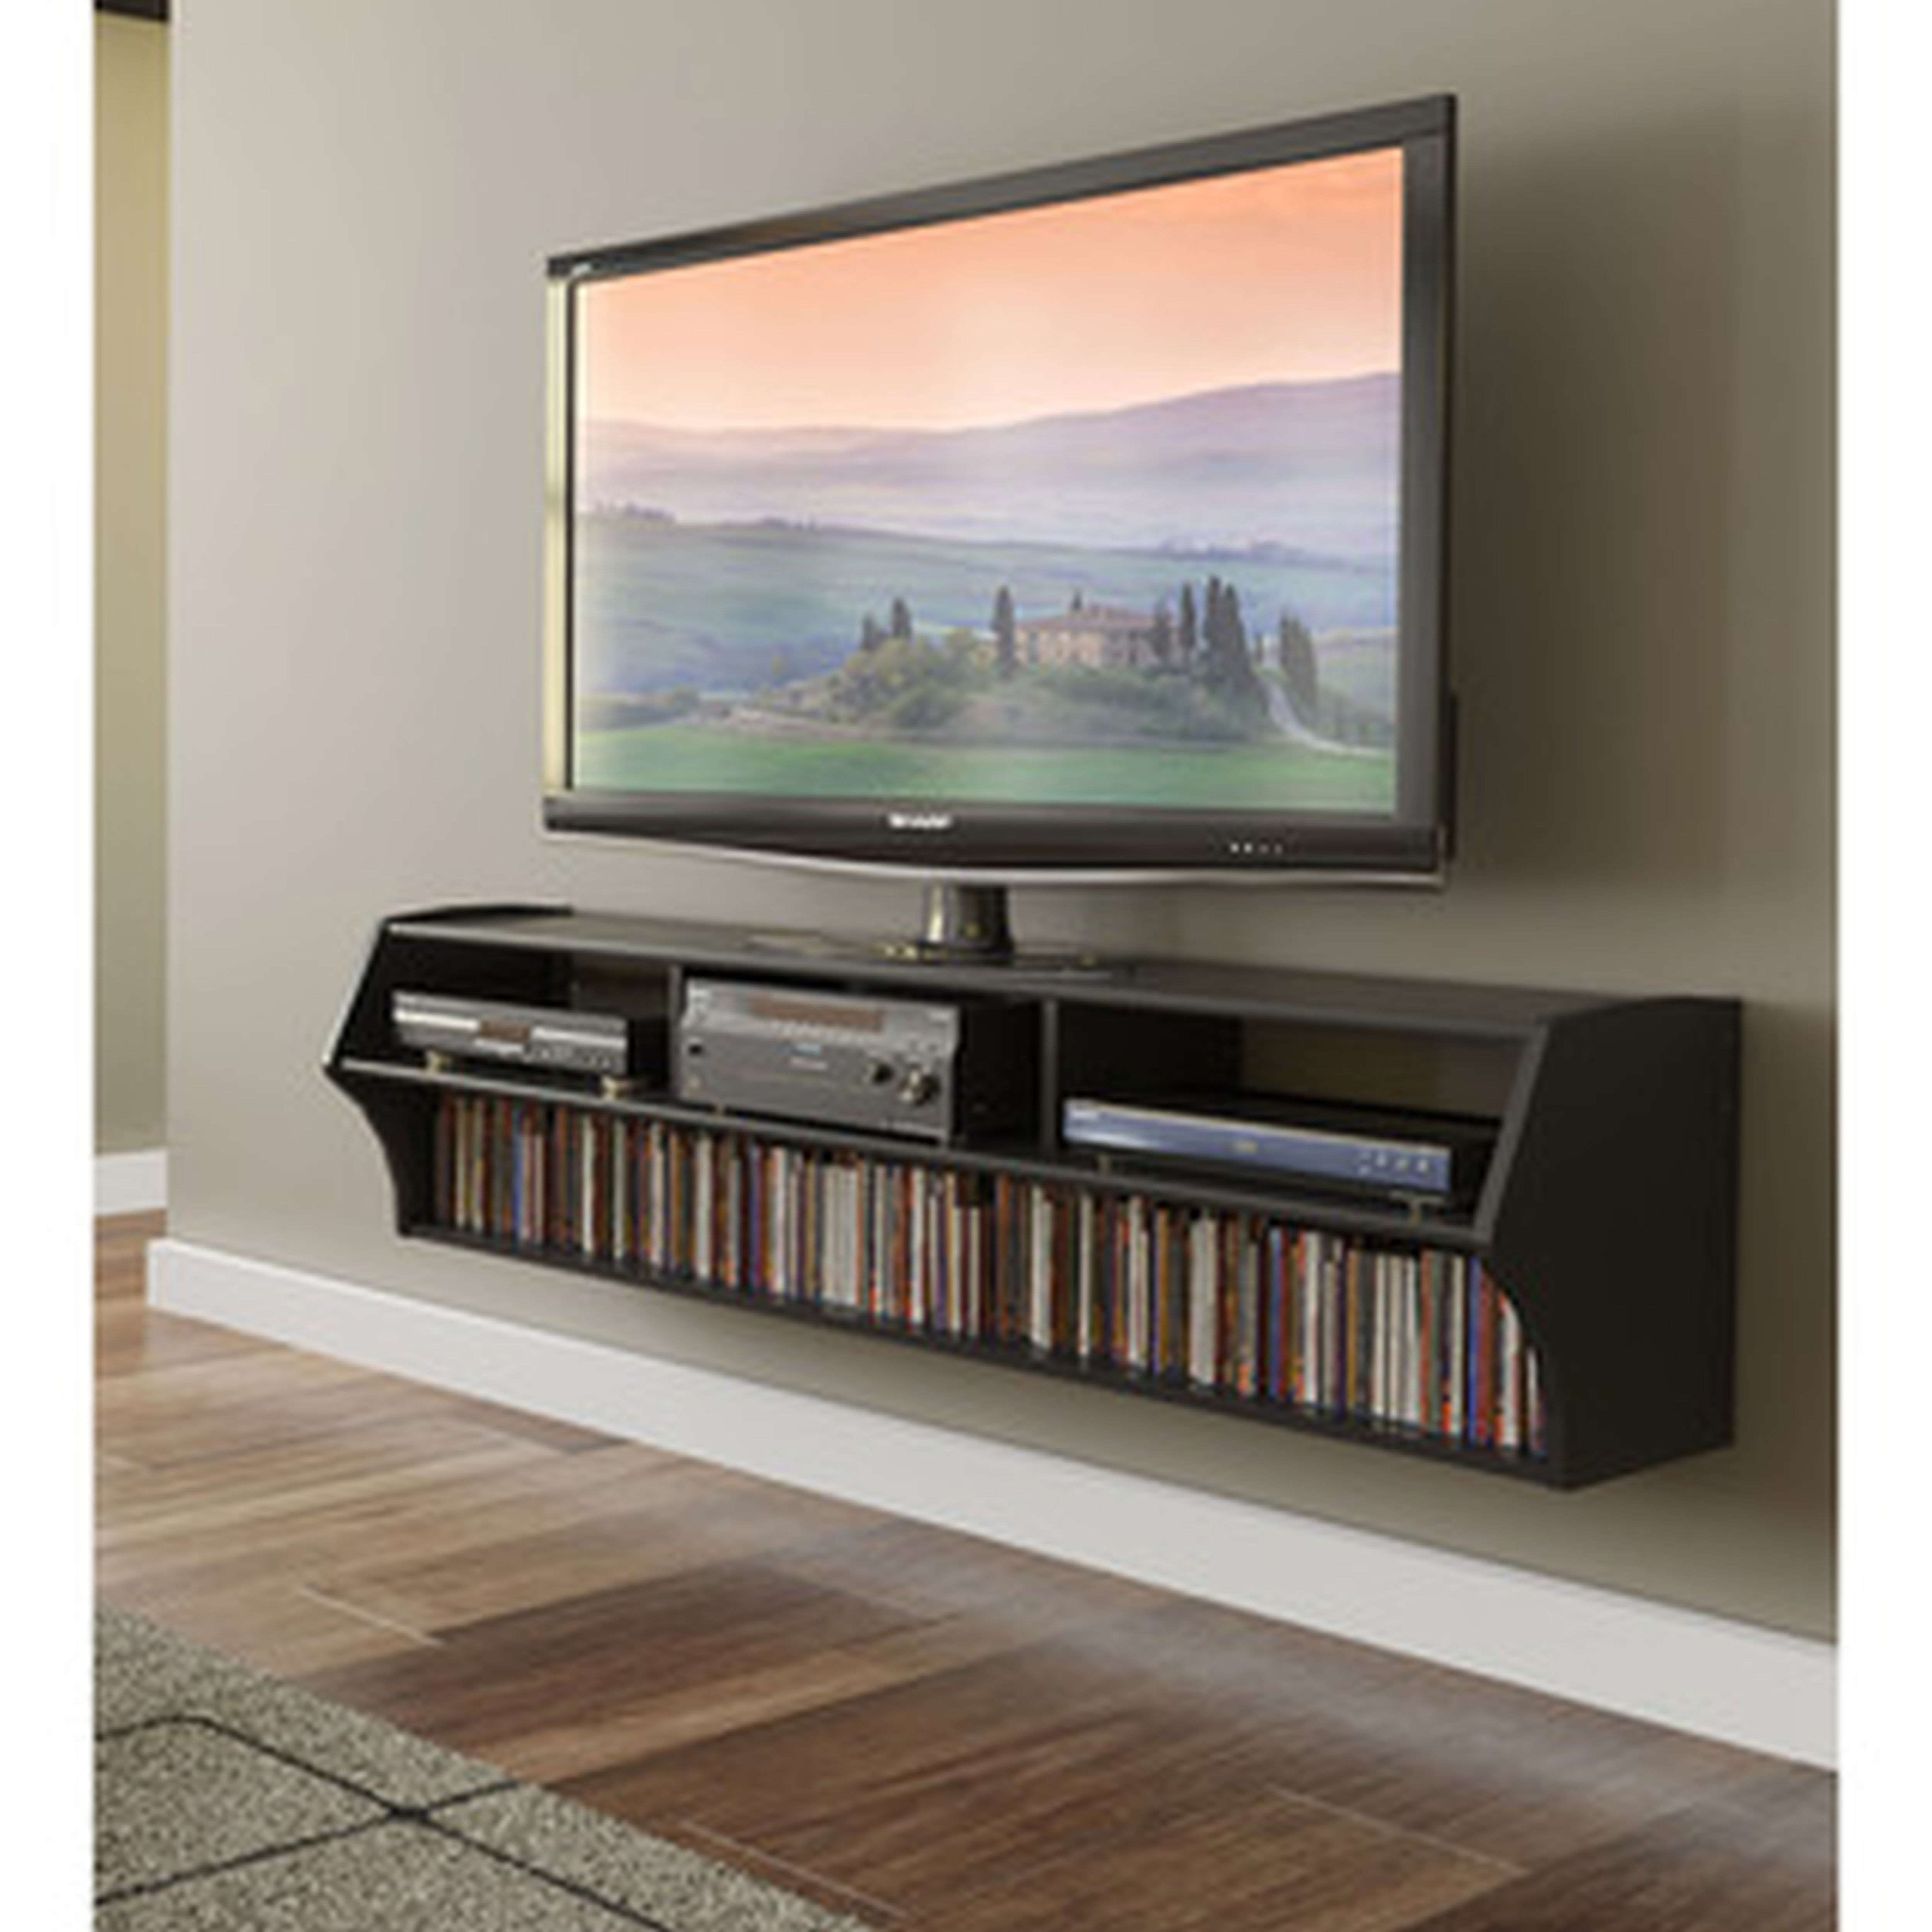 Cool Tv Stand Ideas – Home Design With Regard To Cool Tv Stands (View 7 of 15)